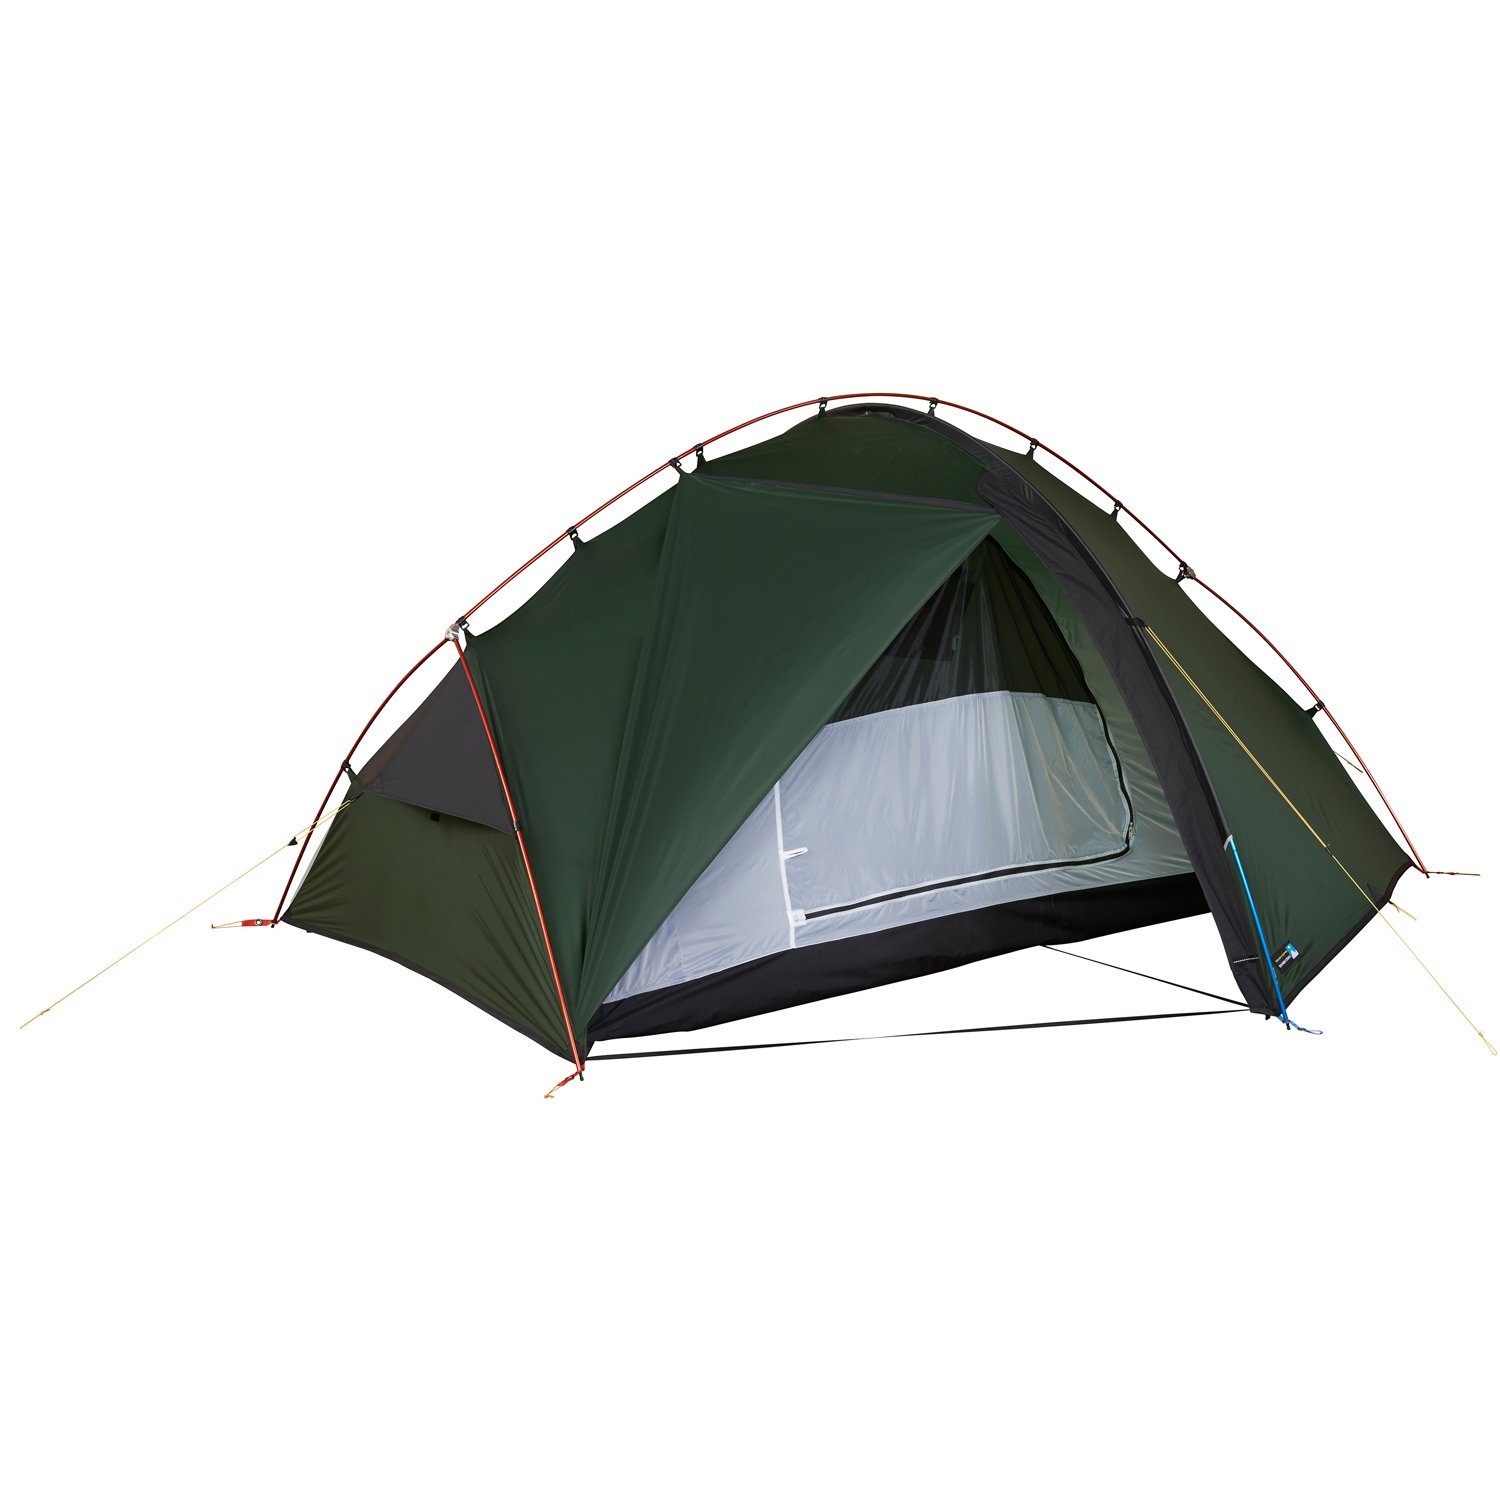 Southern Cross 2 Tent  sc 1 th 225 & Tents Packs Sleeping Bags Clothing u0026 More - Terra Nova Equipment